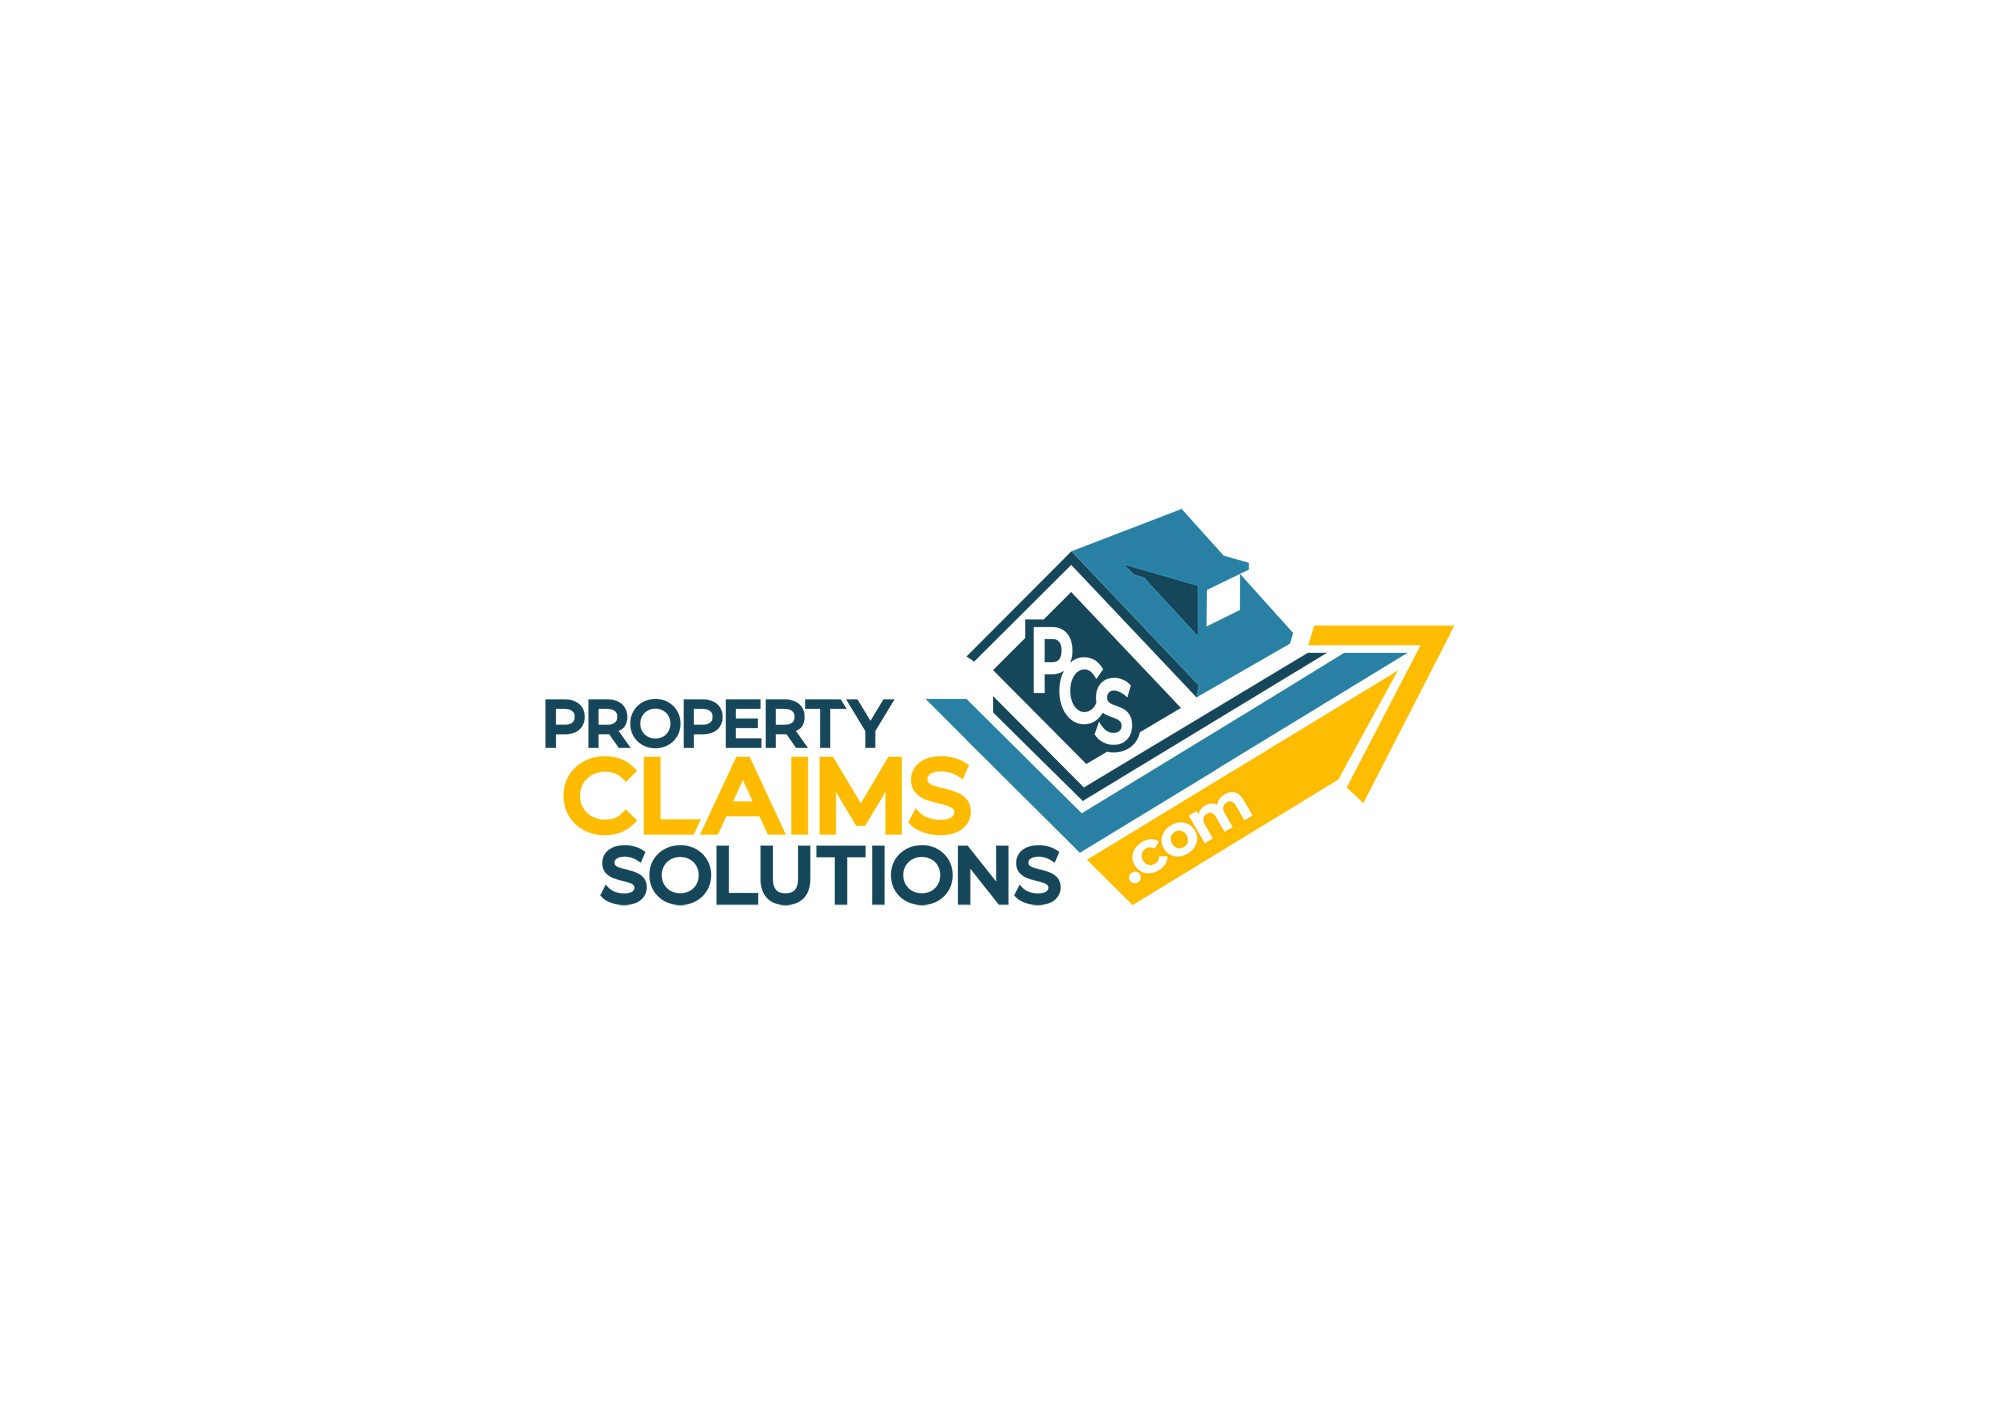 Property Claims Solutions